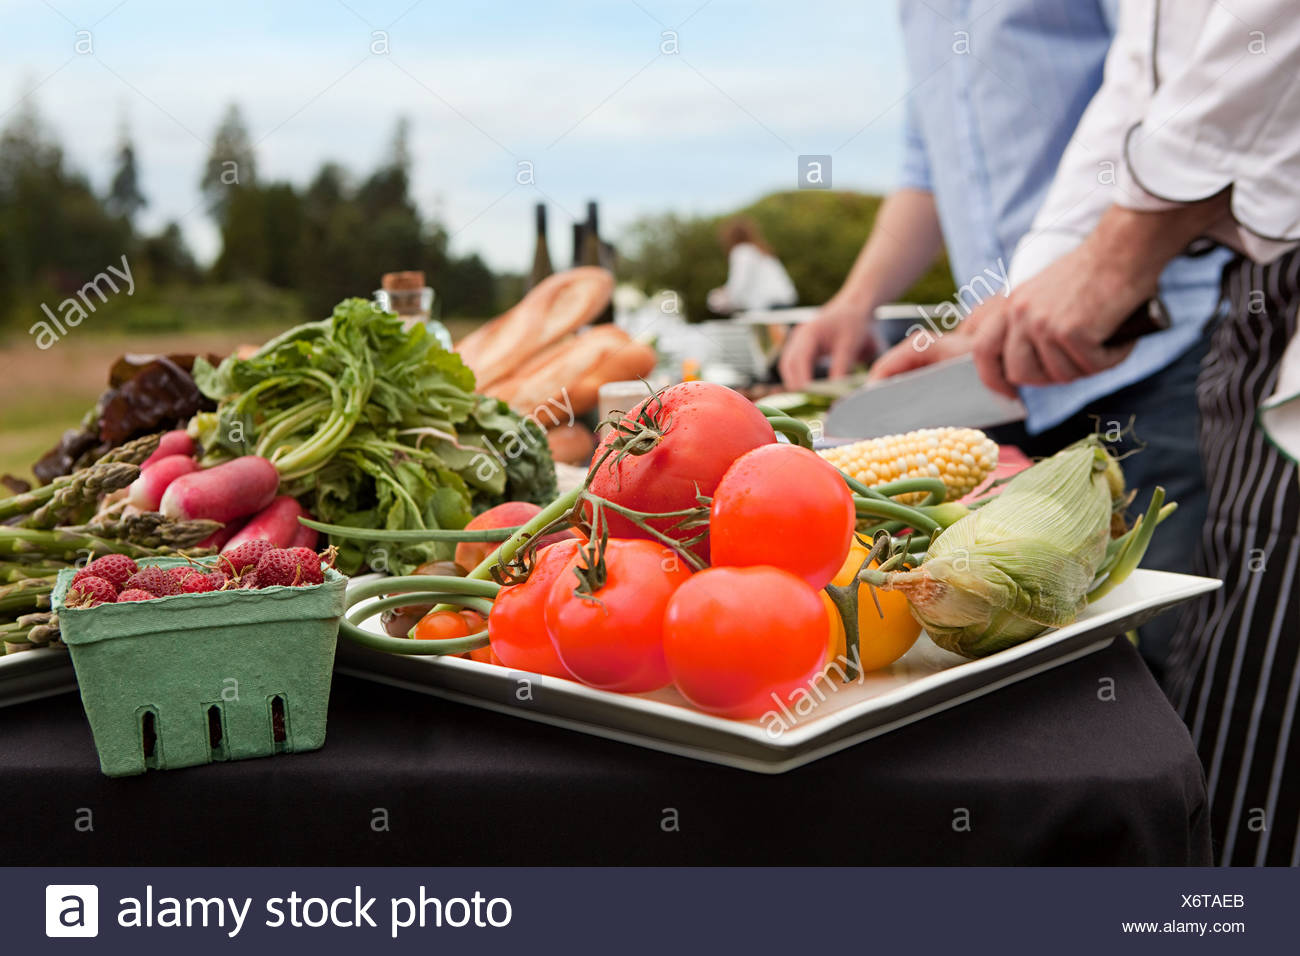 Fresh food being prepared outdoors Stock Photo